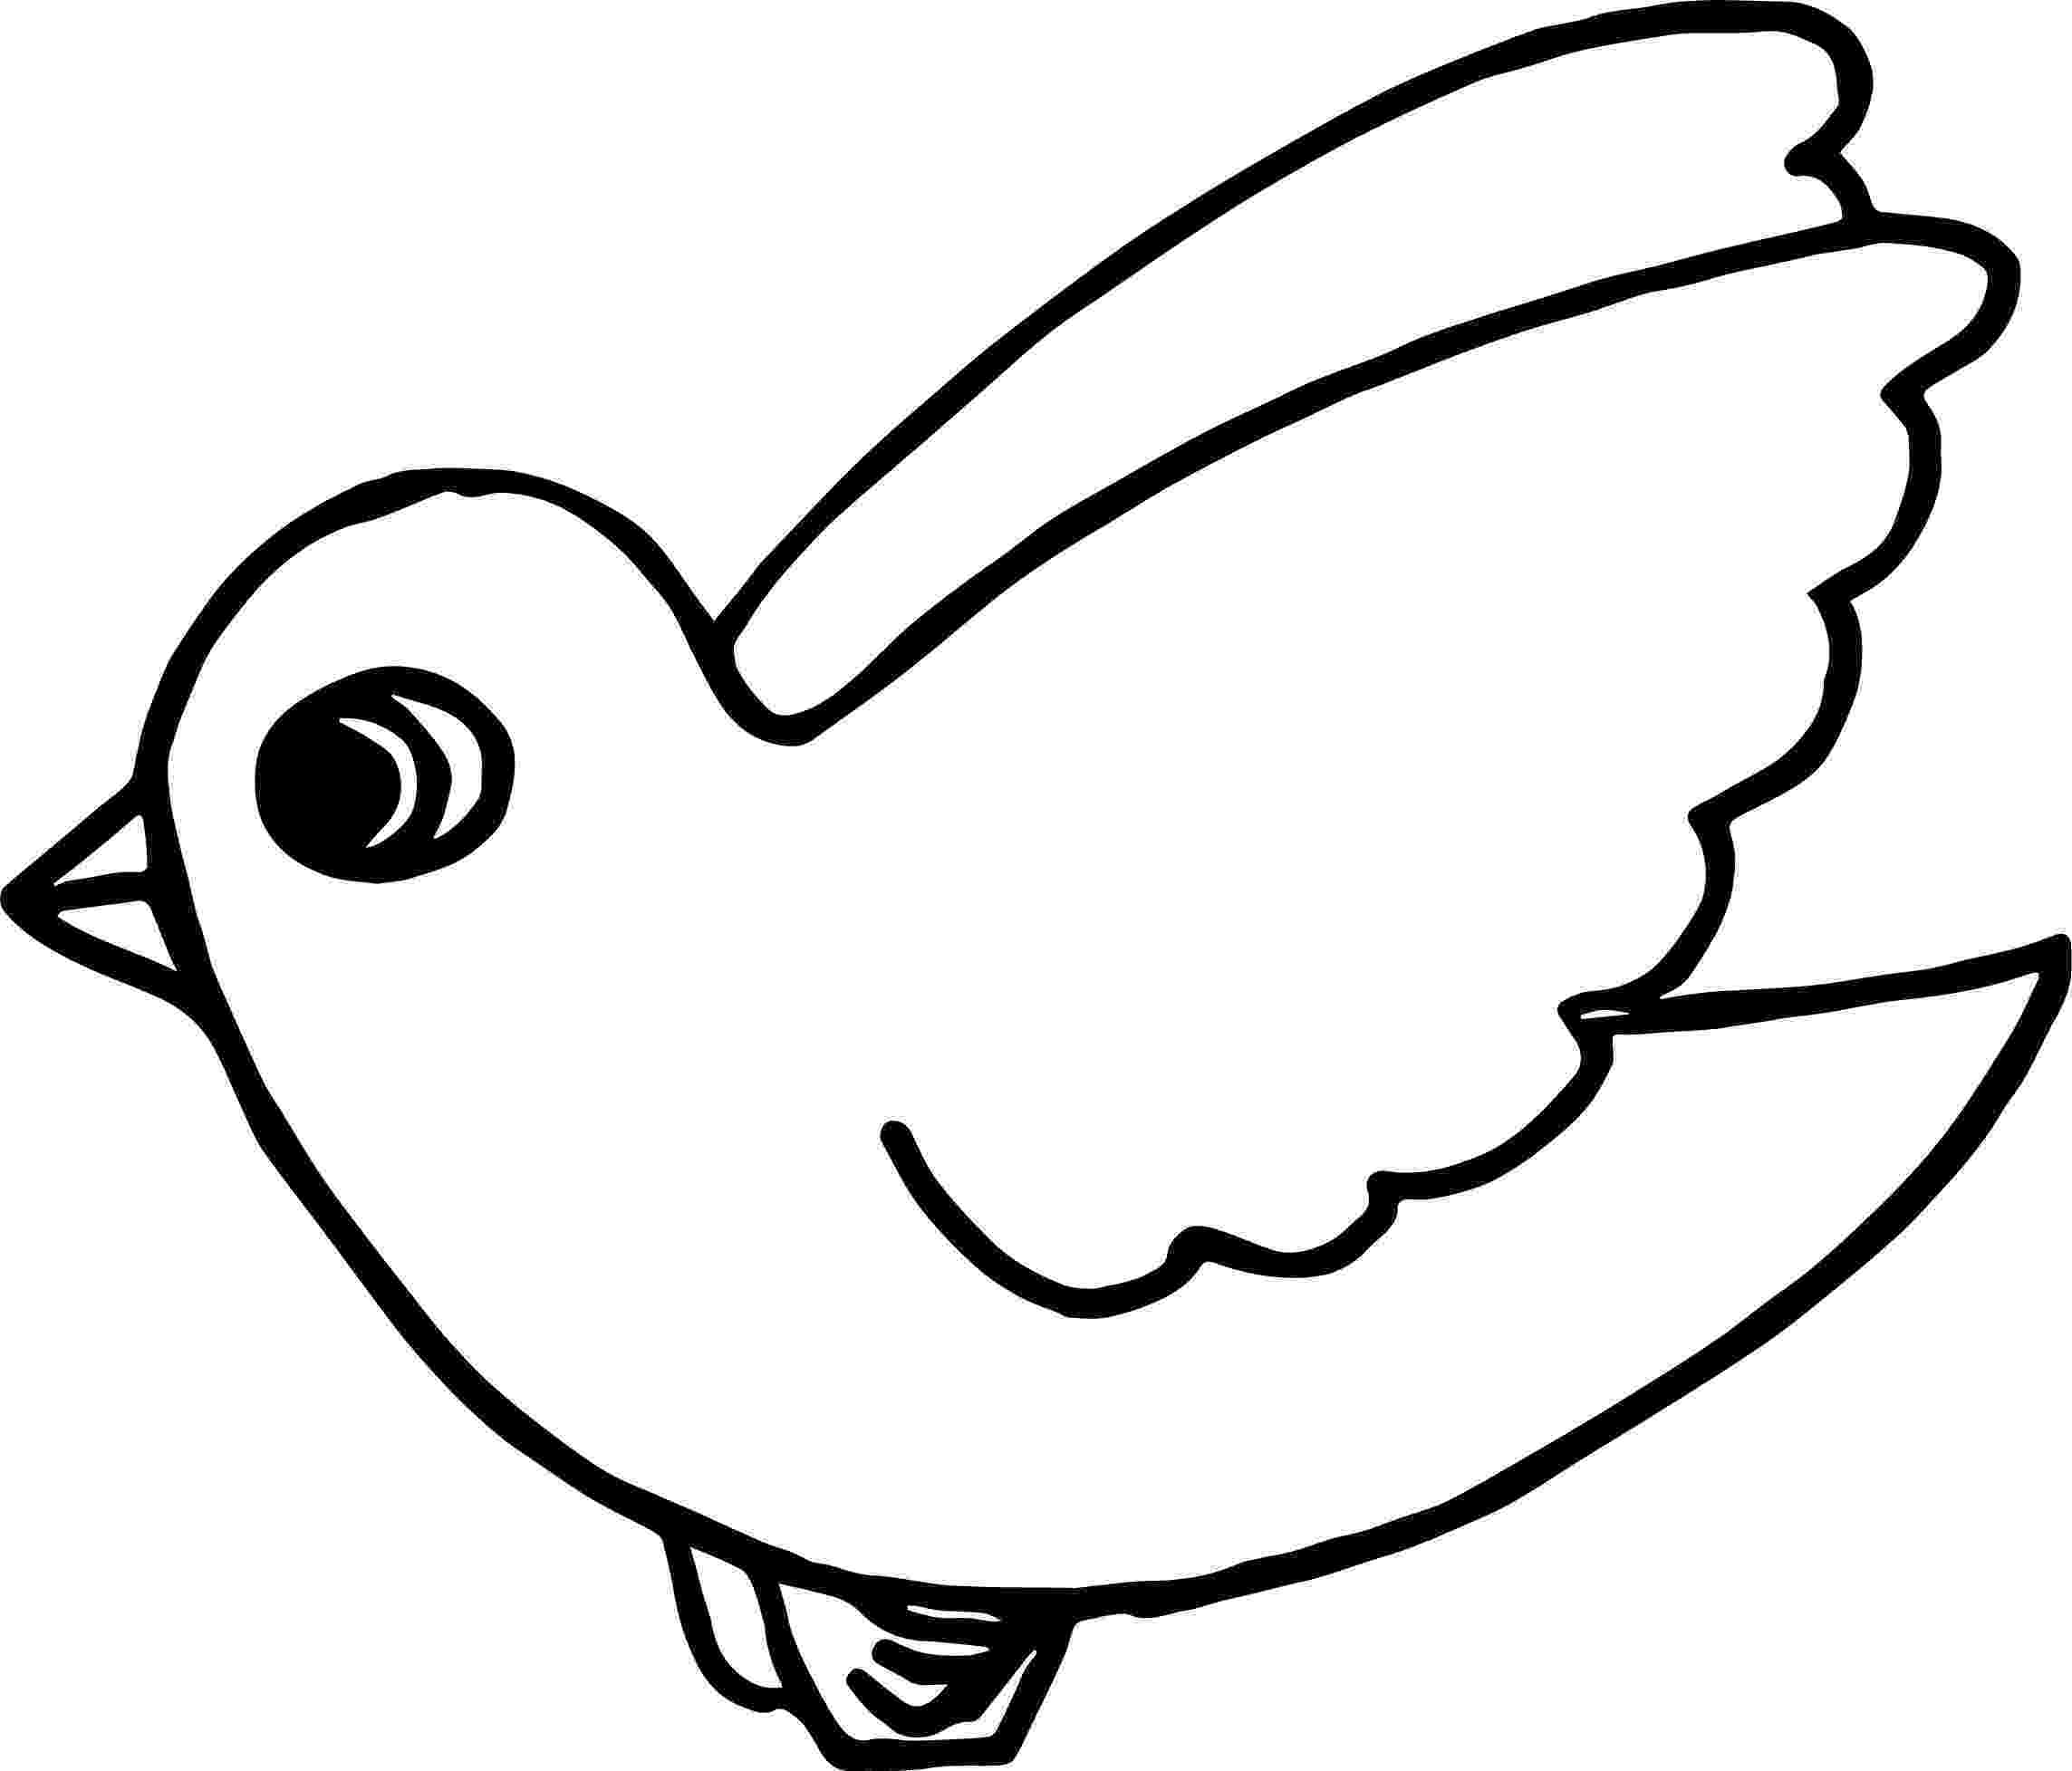 bird coloring images funny bird coloring page wecoloringpagecom coloring images bird